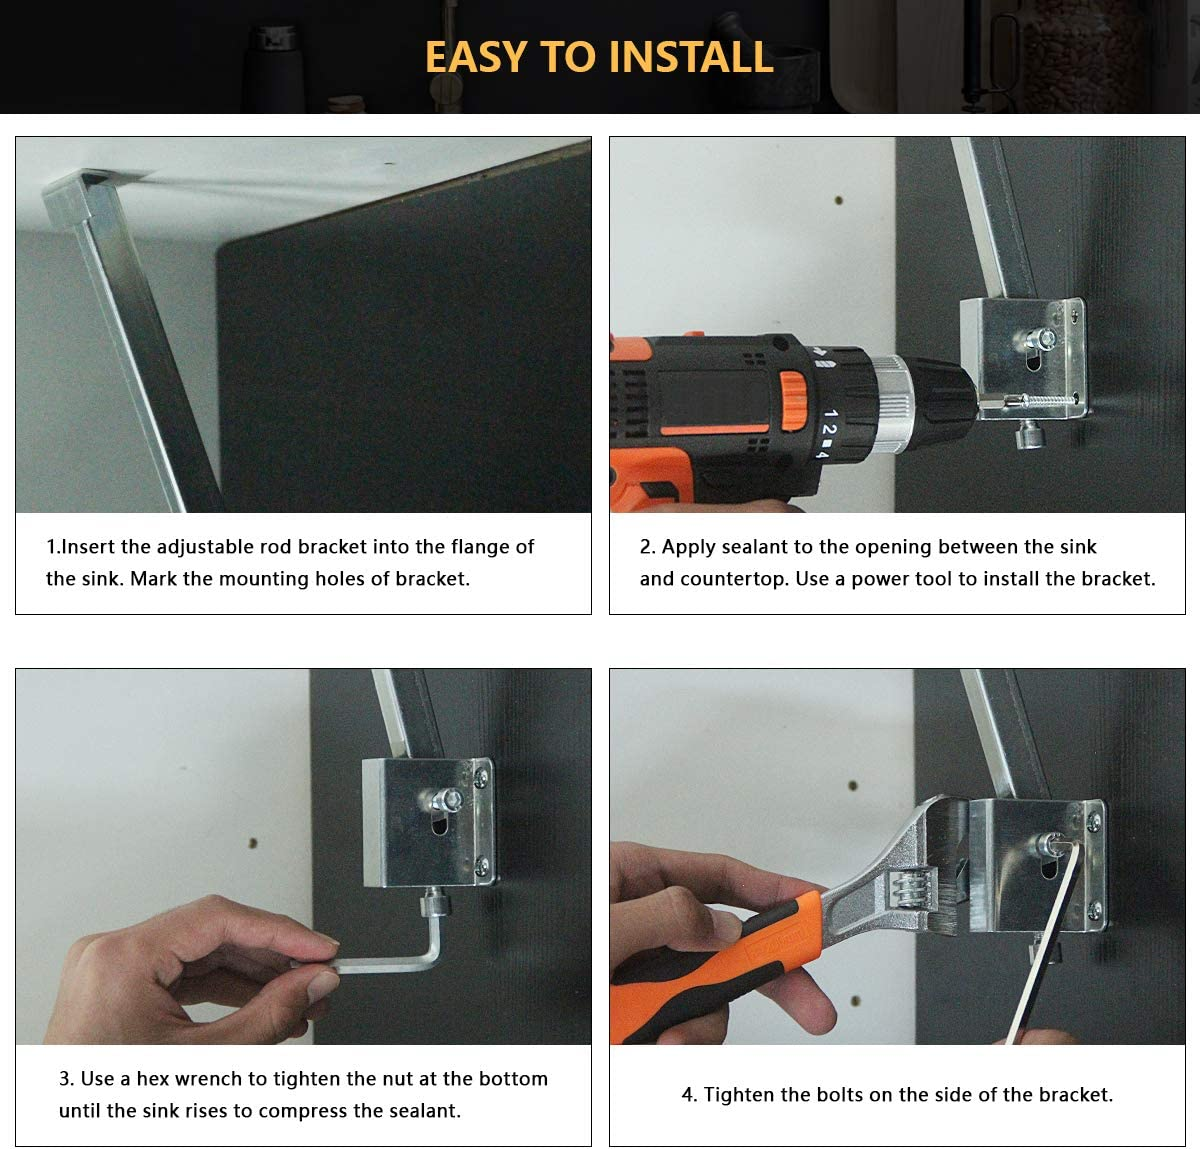 A-KARCK Sink Repair System Galvanized Surface Not Easy Rust Sink Brackets Supports the Sink Quickly and Easily